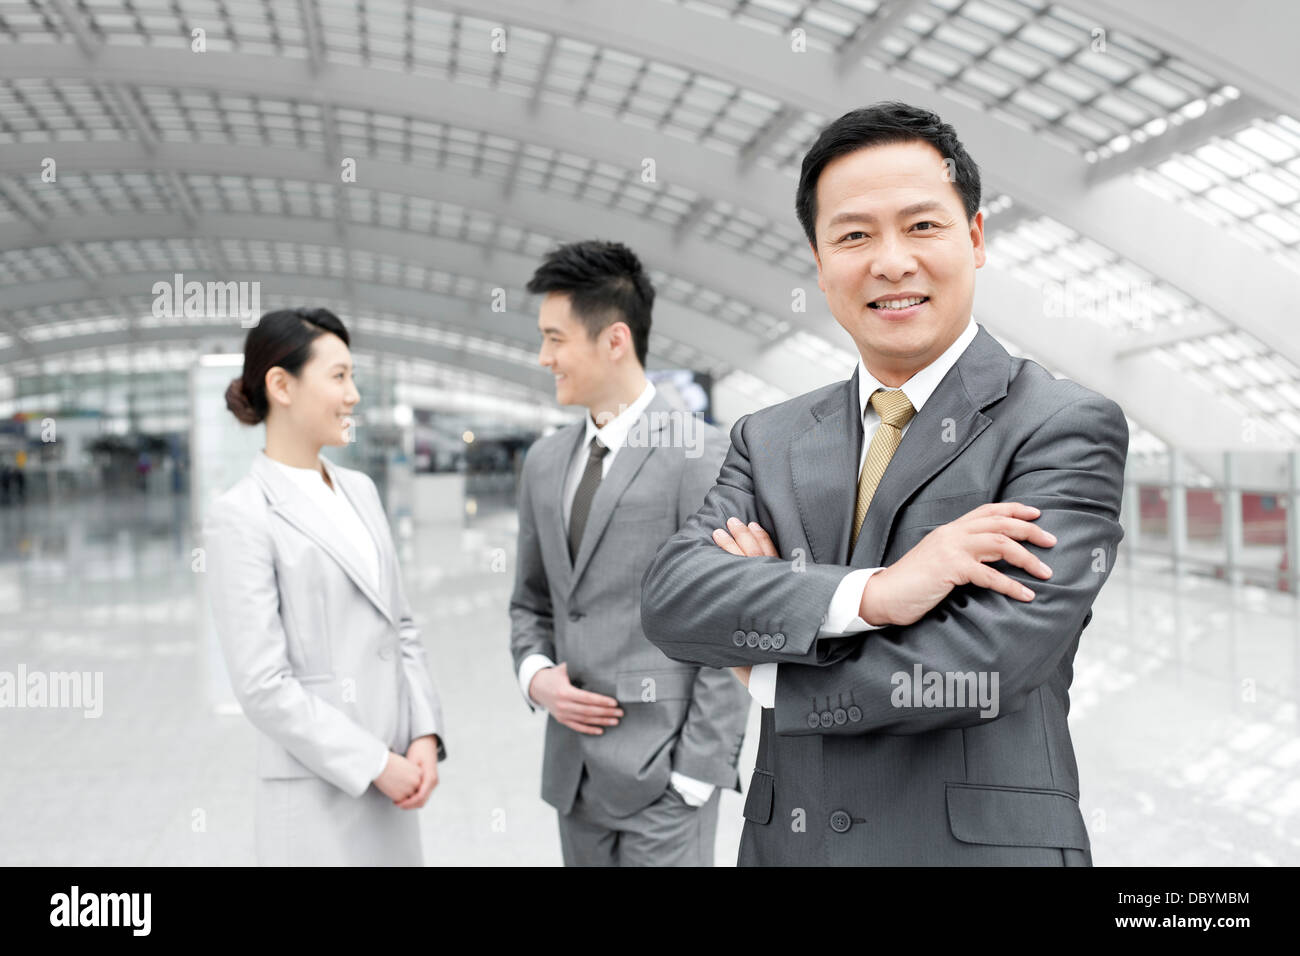 Confident business people in airport lobby Stock Photo